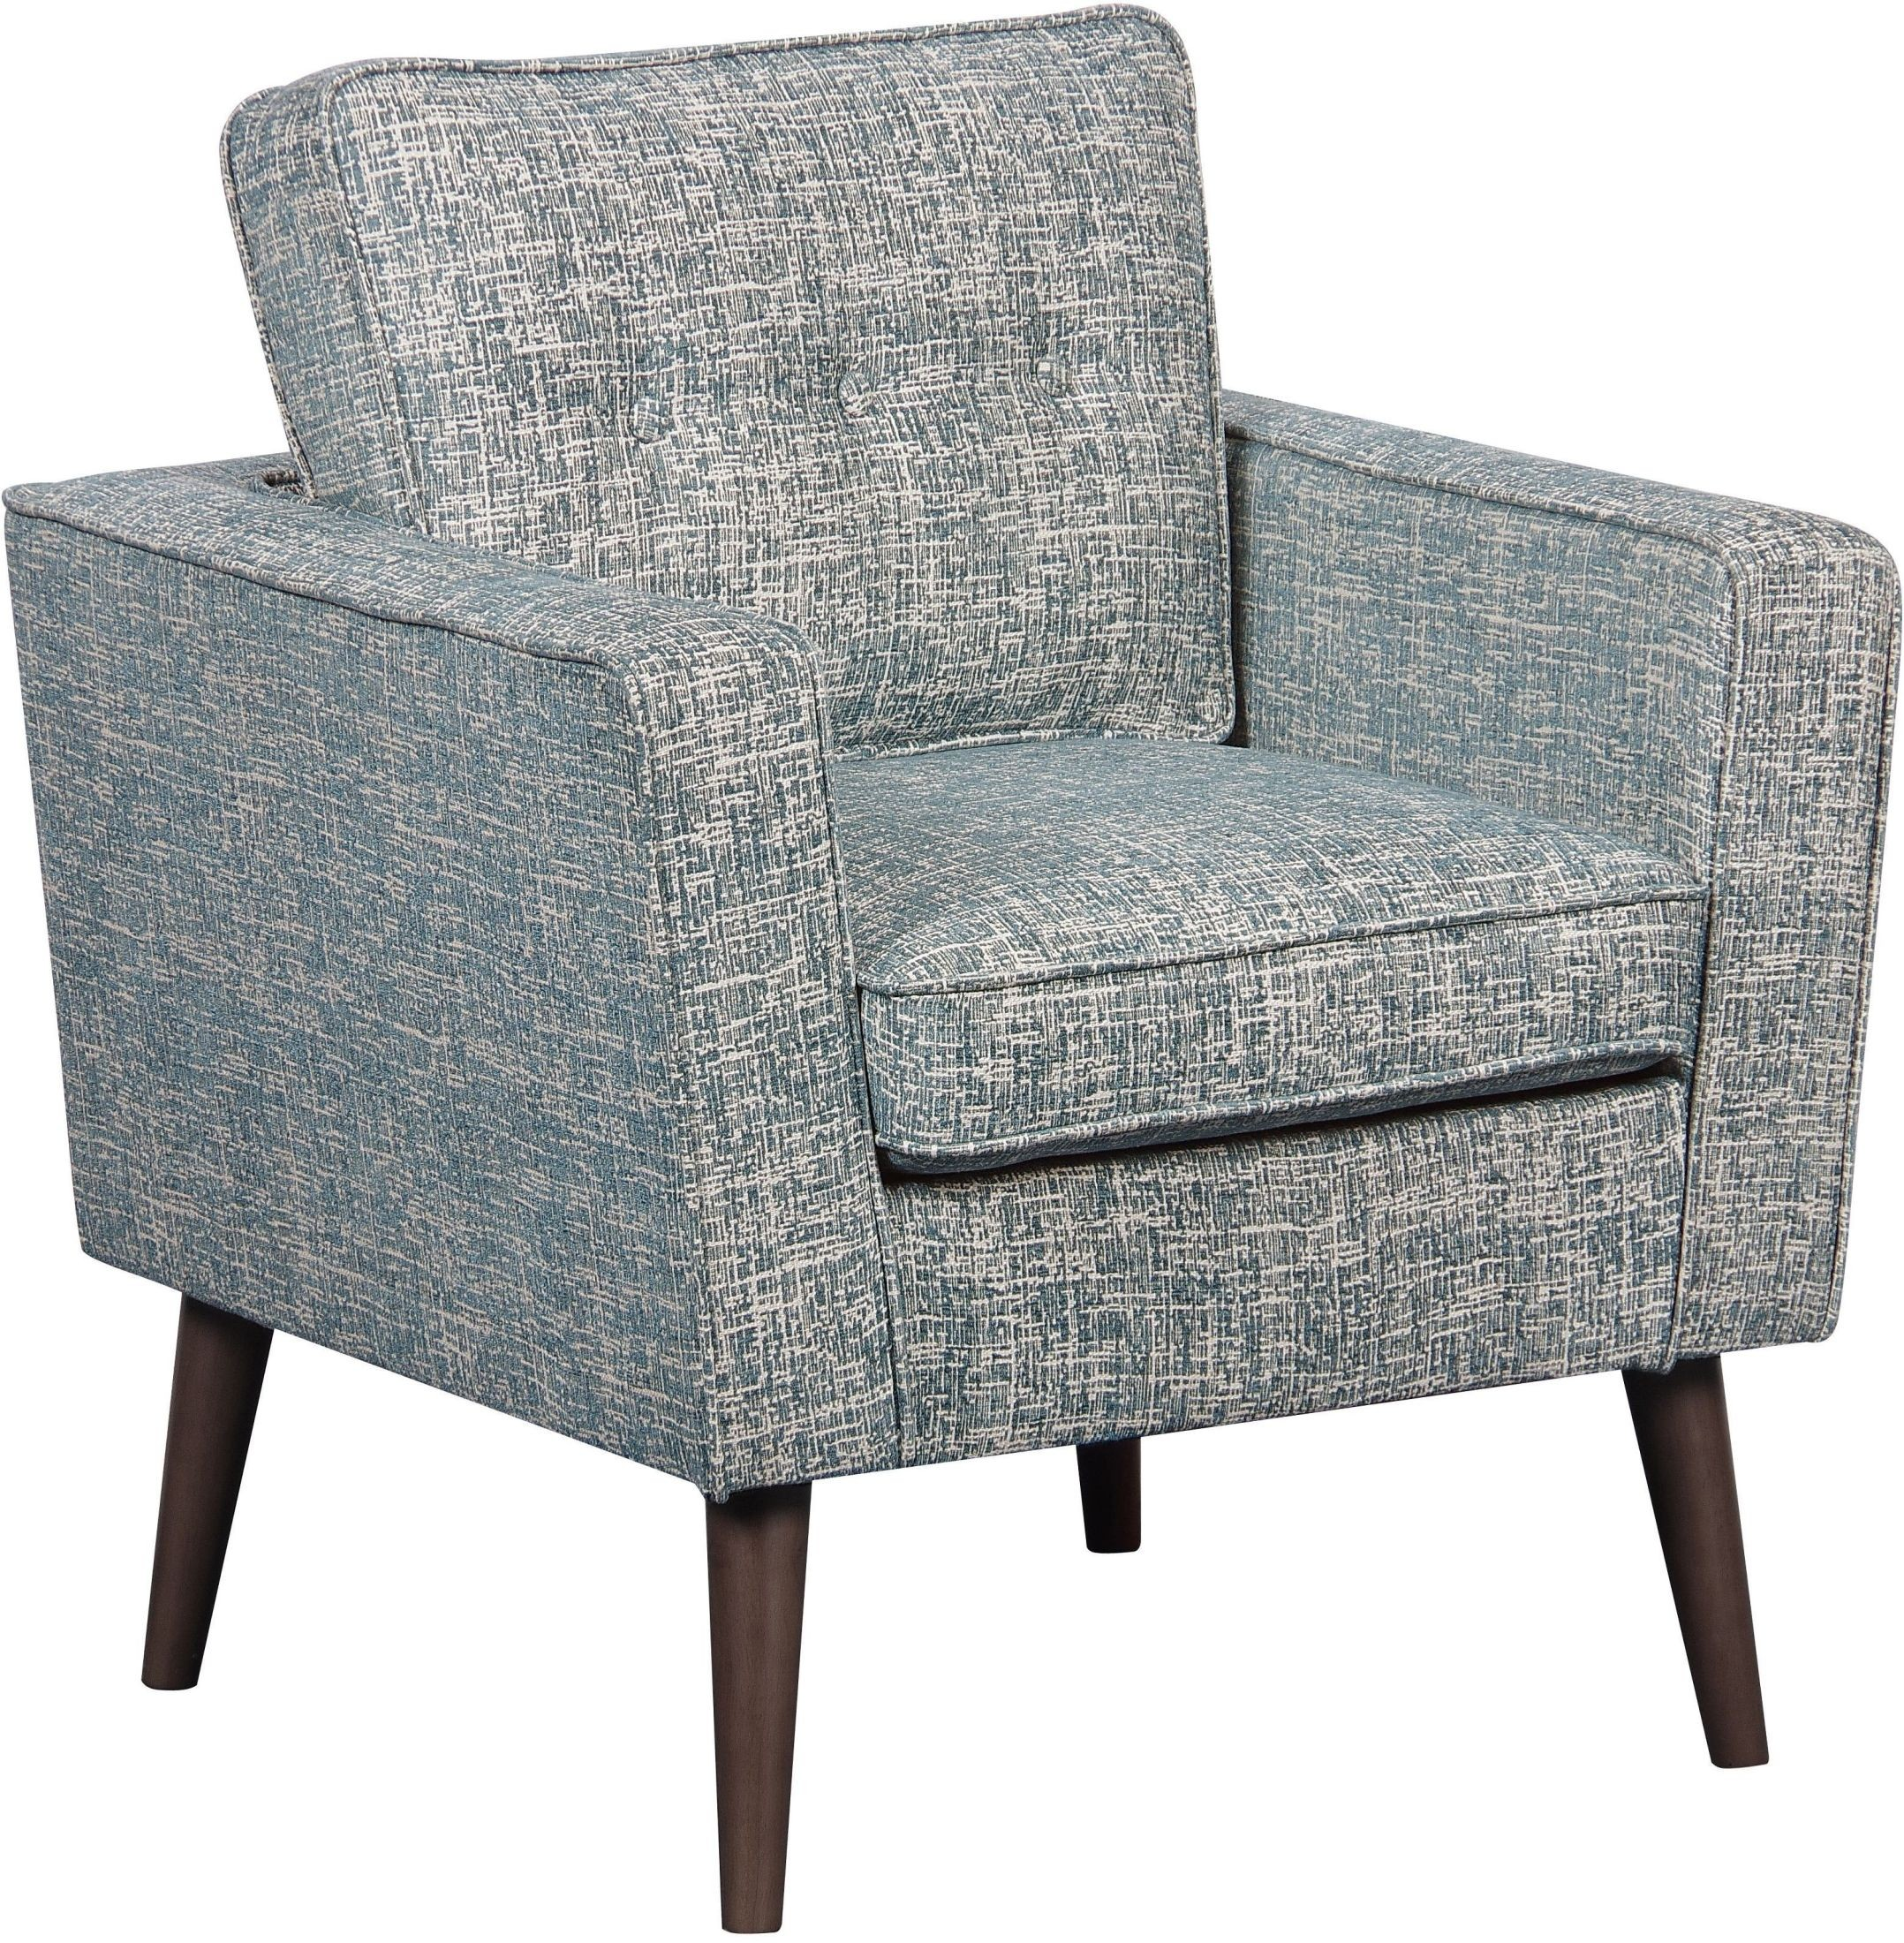 Accent Chairs Modern Mid Century Modern Lagoon Textured Accent Chair From